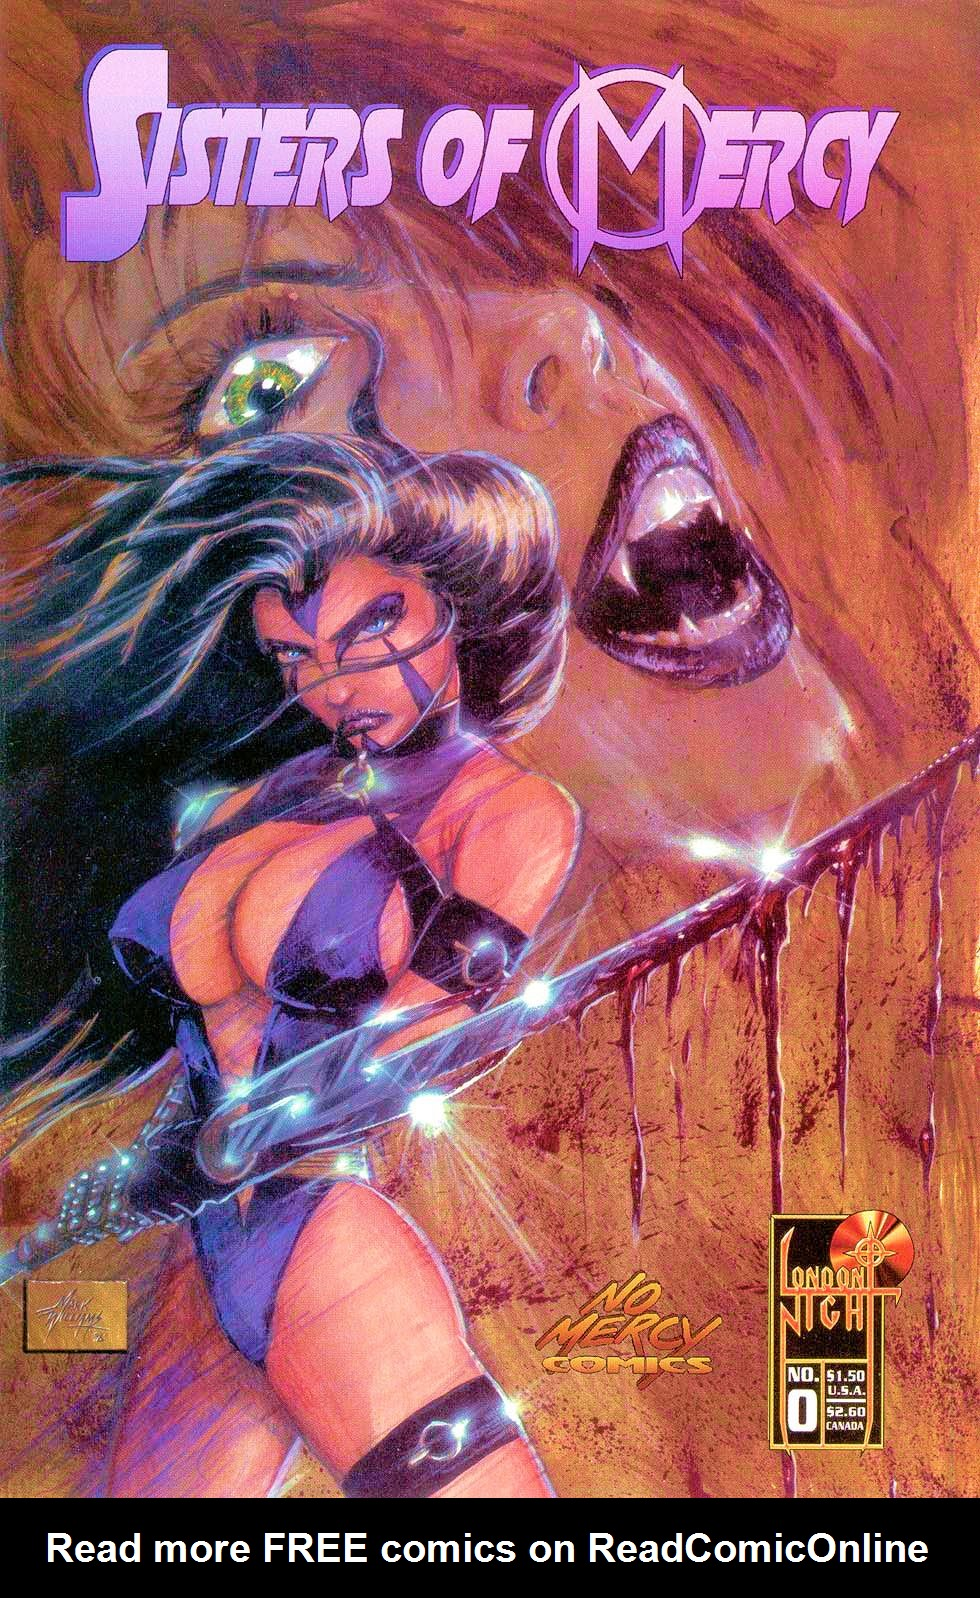 Read online Sisters of Mercy comic -  Issue #0 - 1